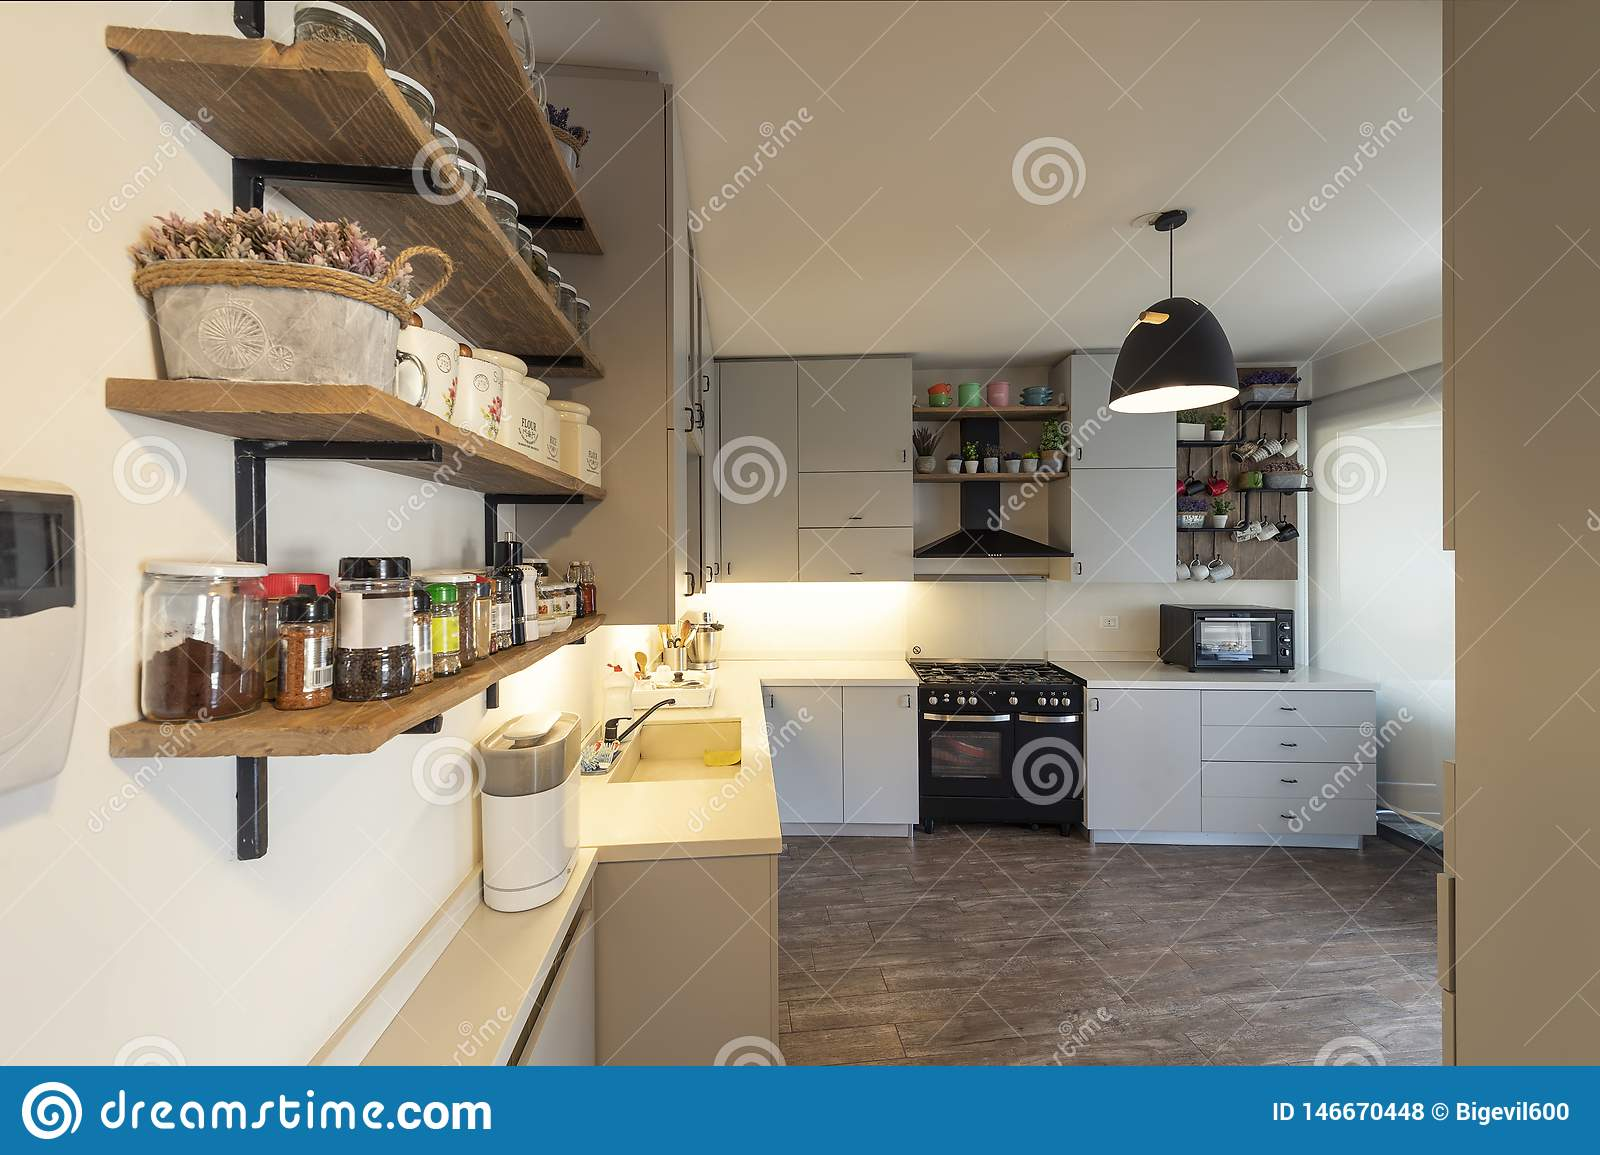 Vintage Industrial Kitchen Kitchen Design Stock Photo Image Of Floor Estate 146670448